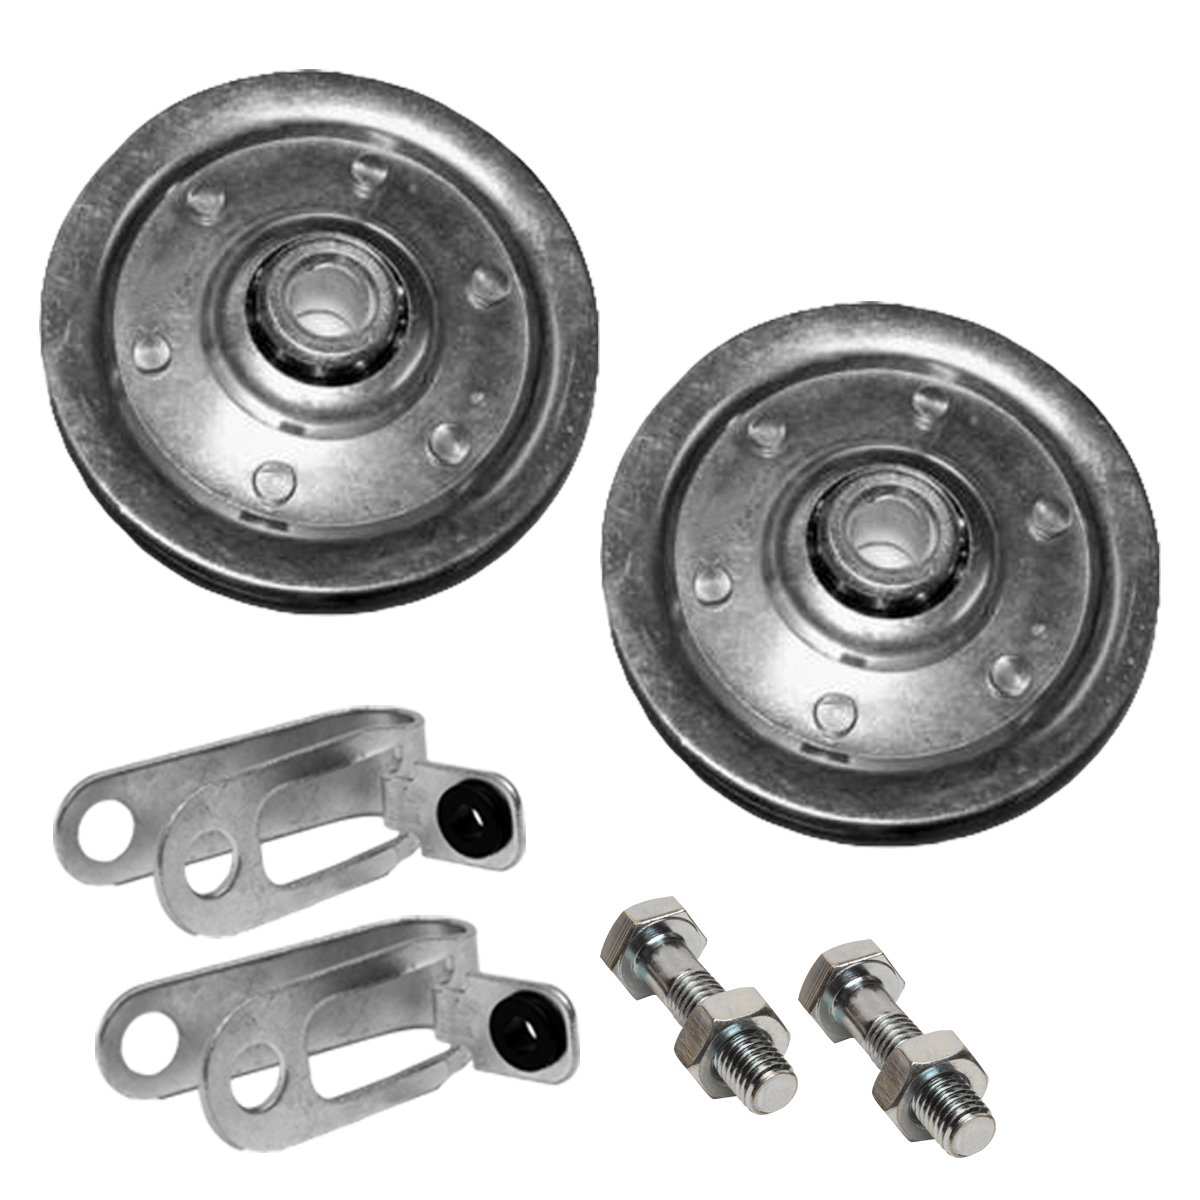 Garage Door Pulley 3'' and Safety Cable Guide for Extension Springs (Pair)